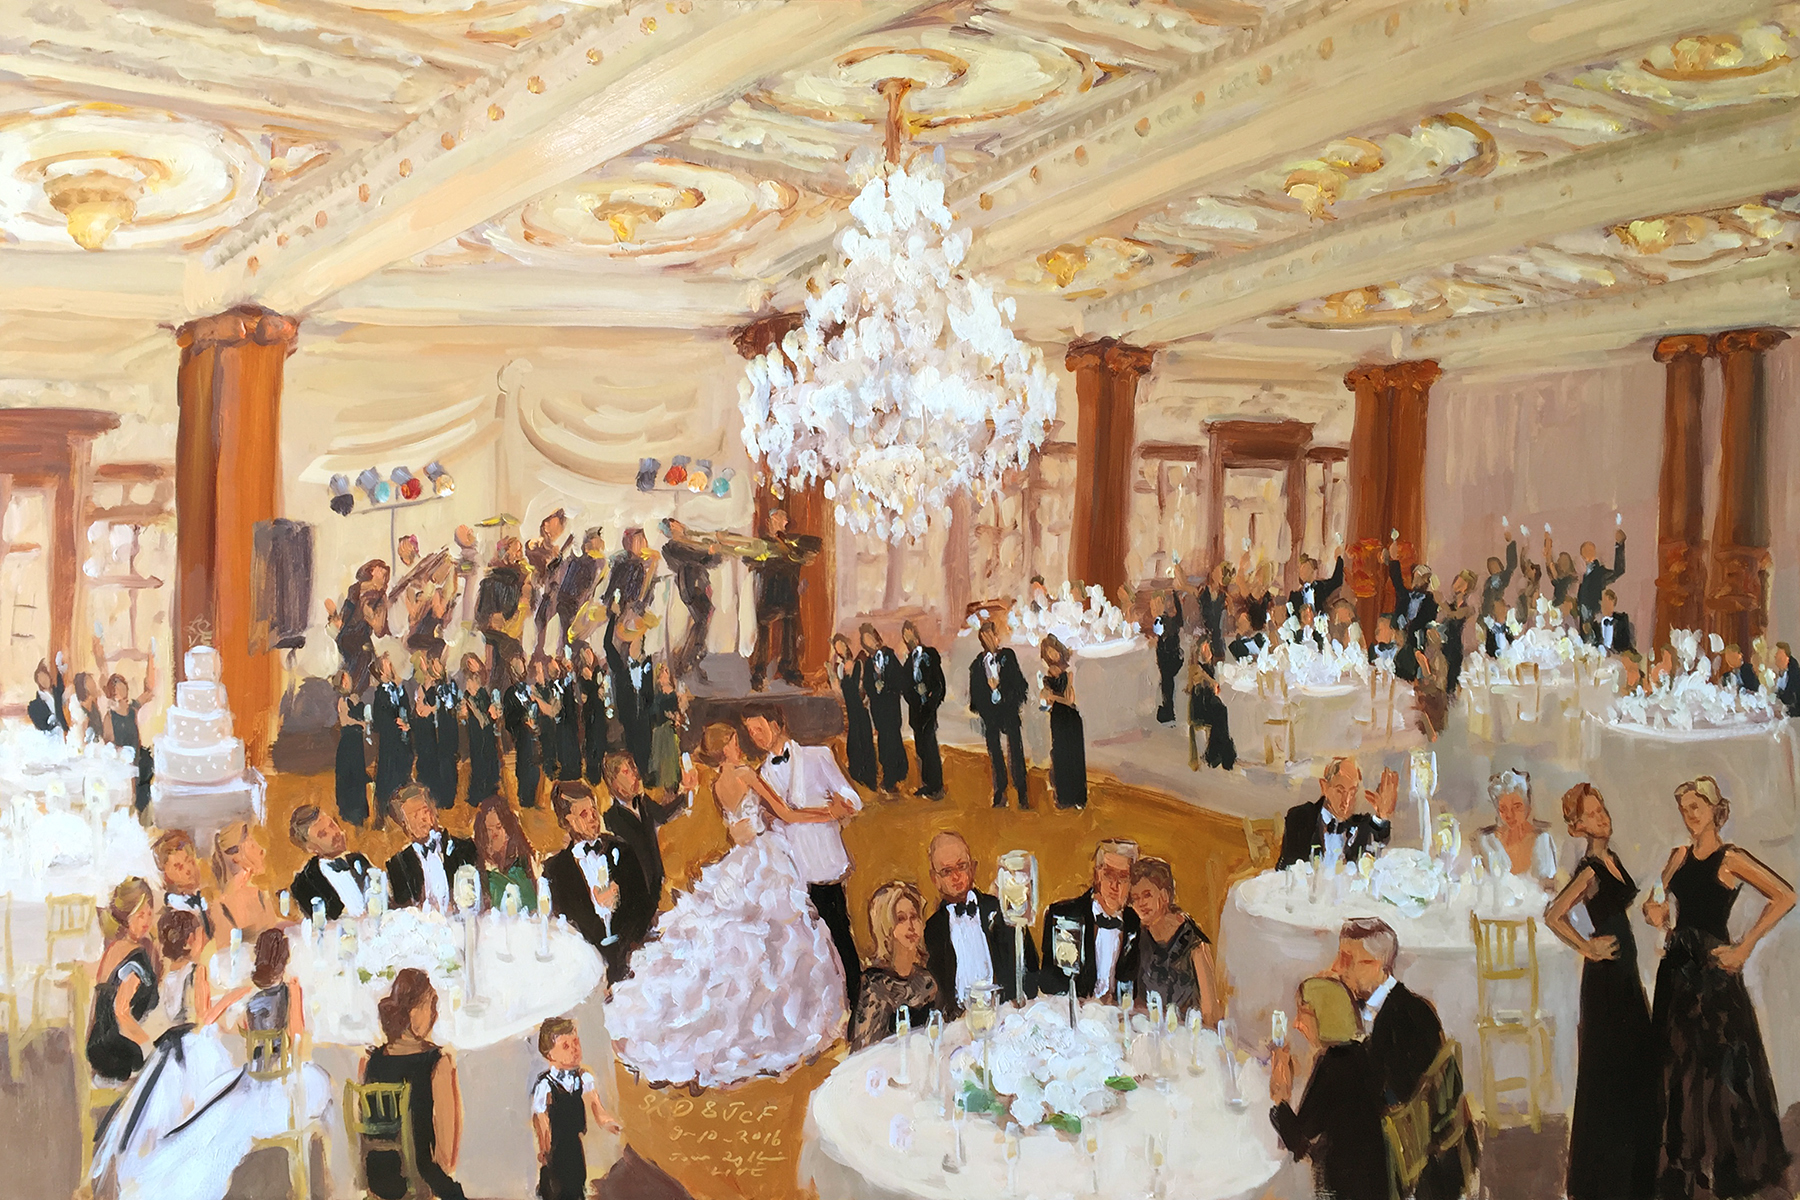 Crystal Tea Room Wedding Painted Live During The Reception By Event Painter Joan Zylkin